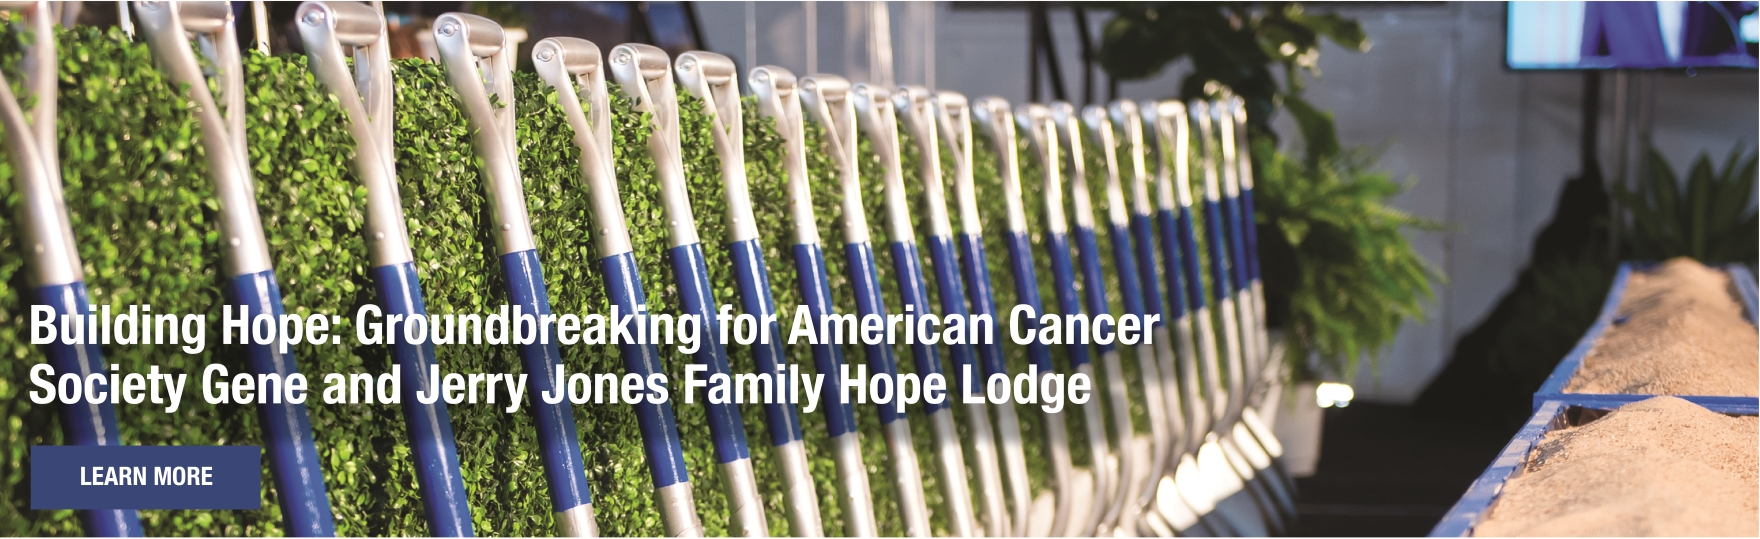 Building Hope: Groundbreaking for American Cancer Society Gene and Jerry Jones Family Hope Lodge